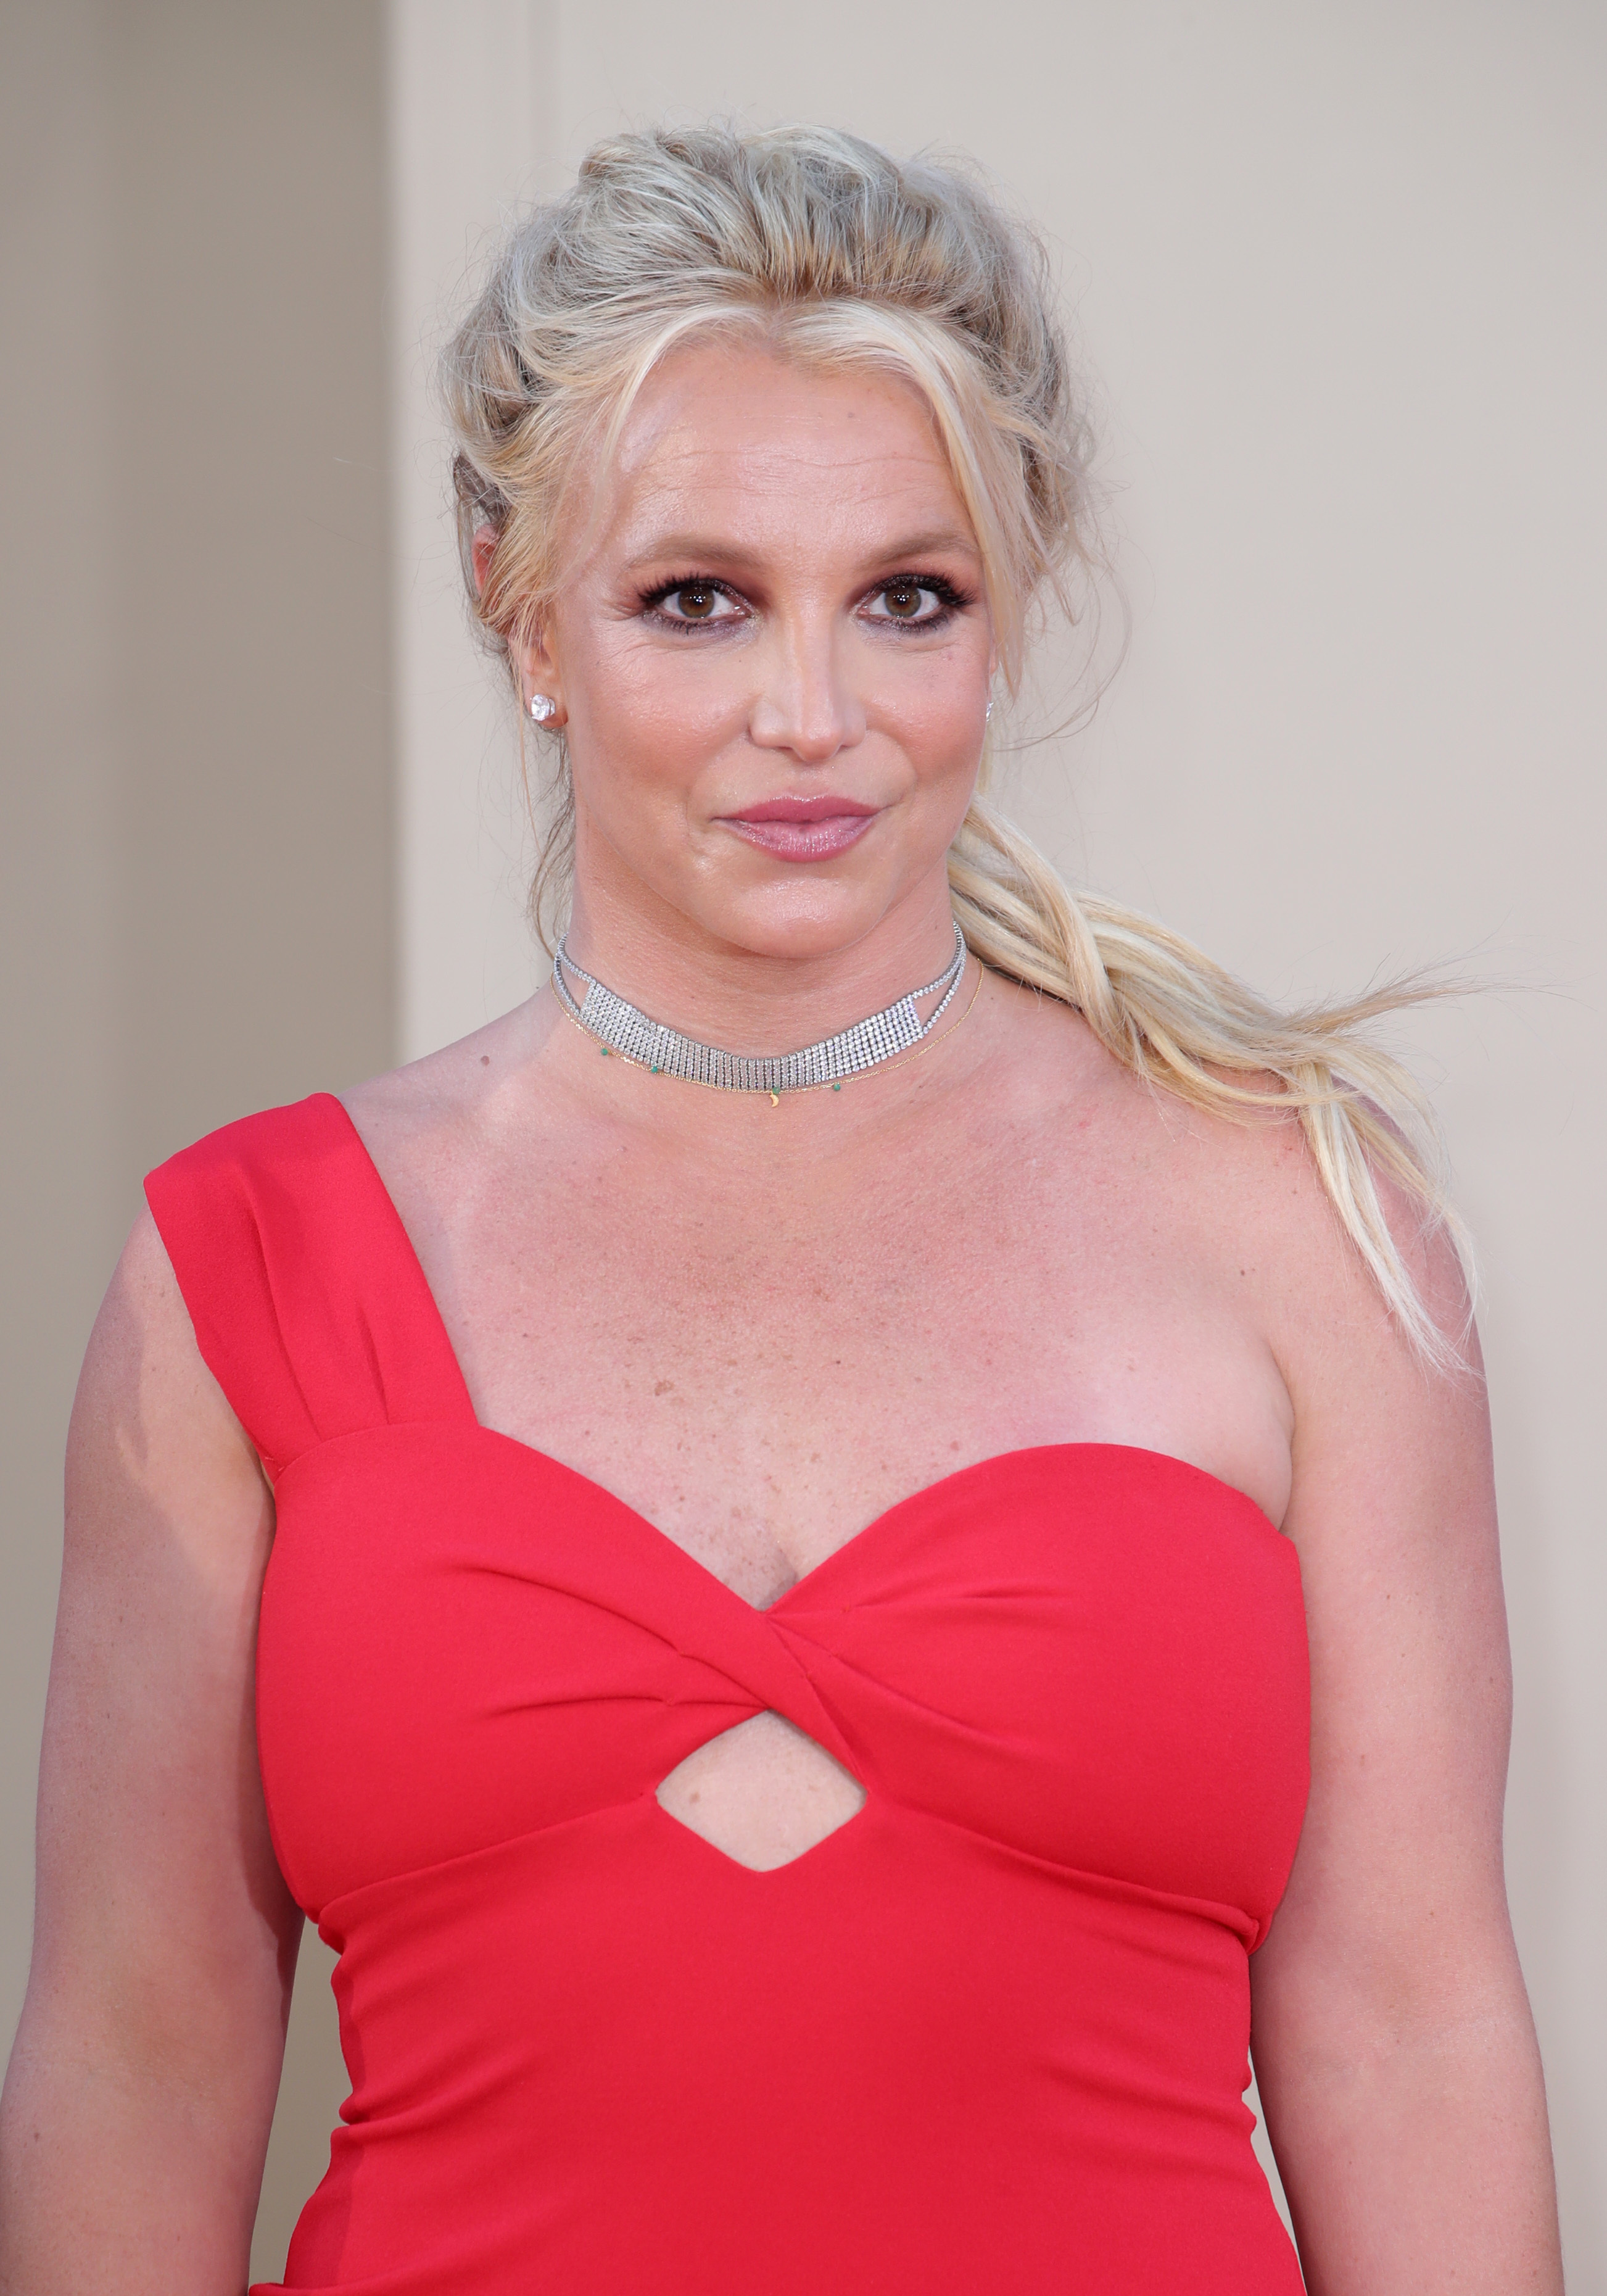 Nearly Naked! Watch Britney Spears Show Off Her Sexy Dance